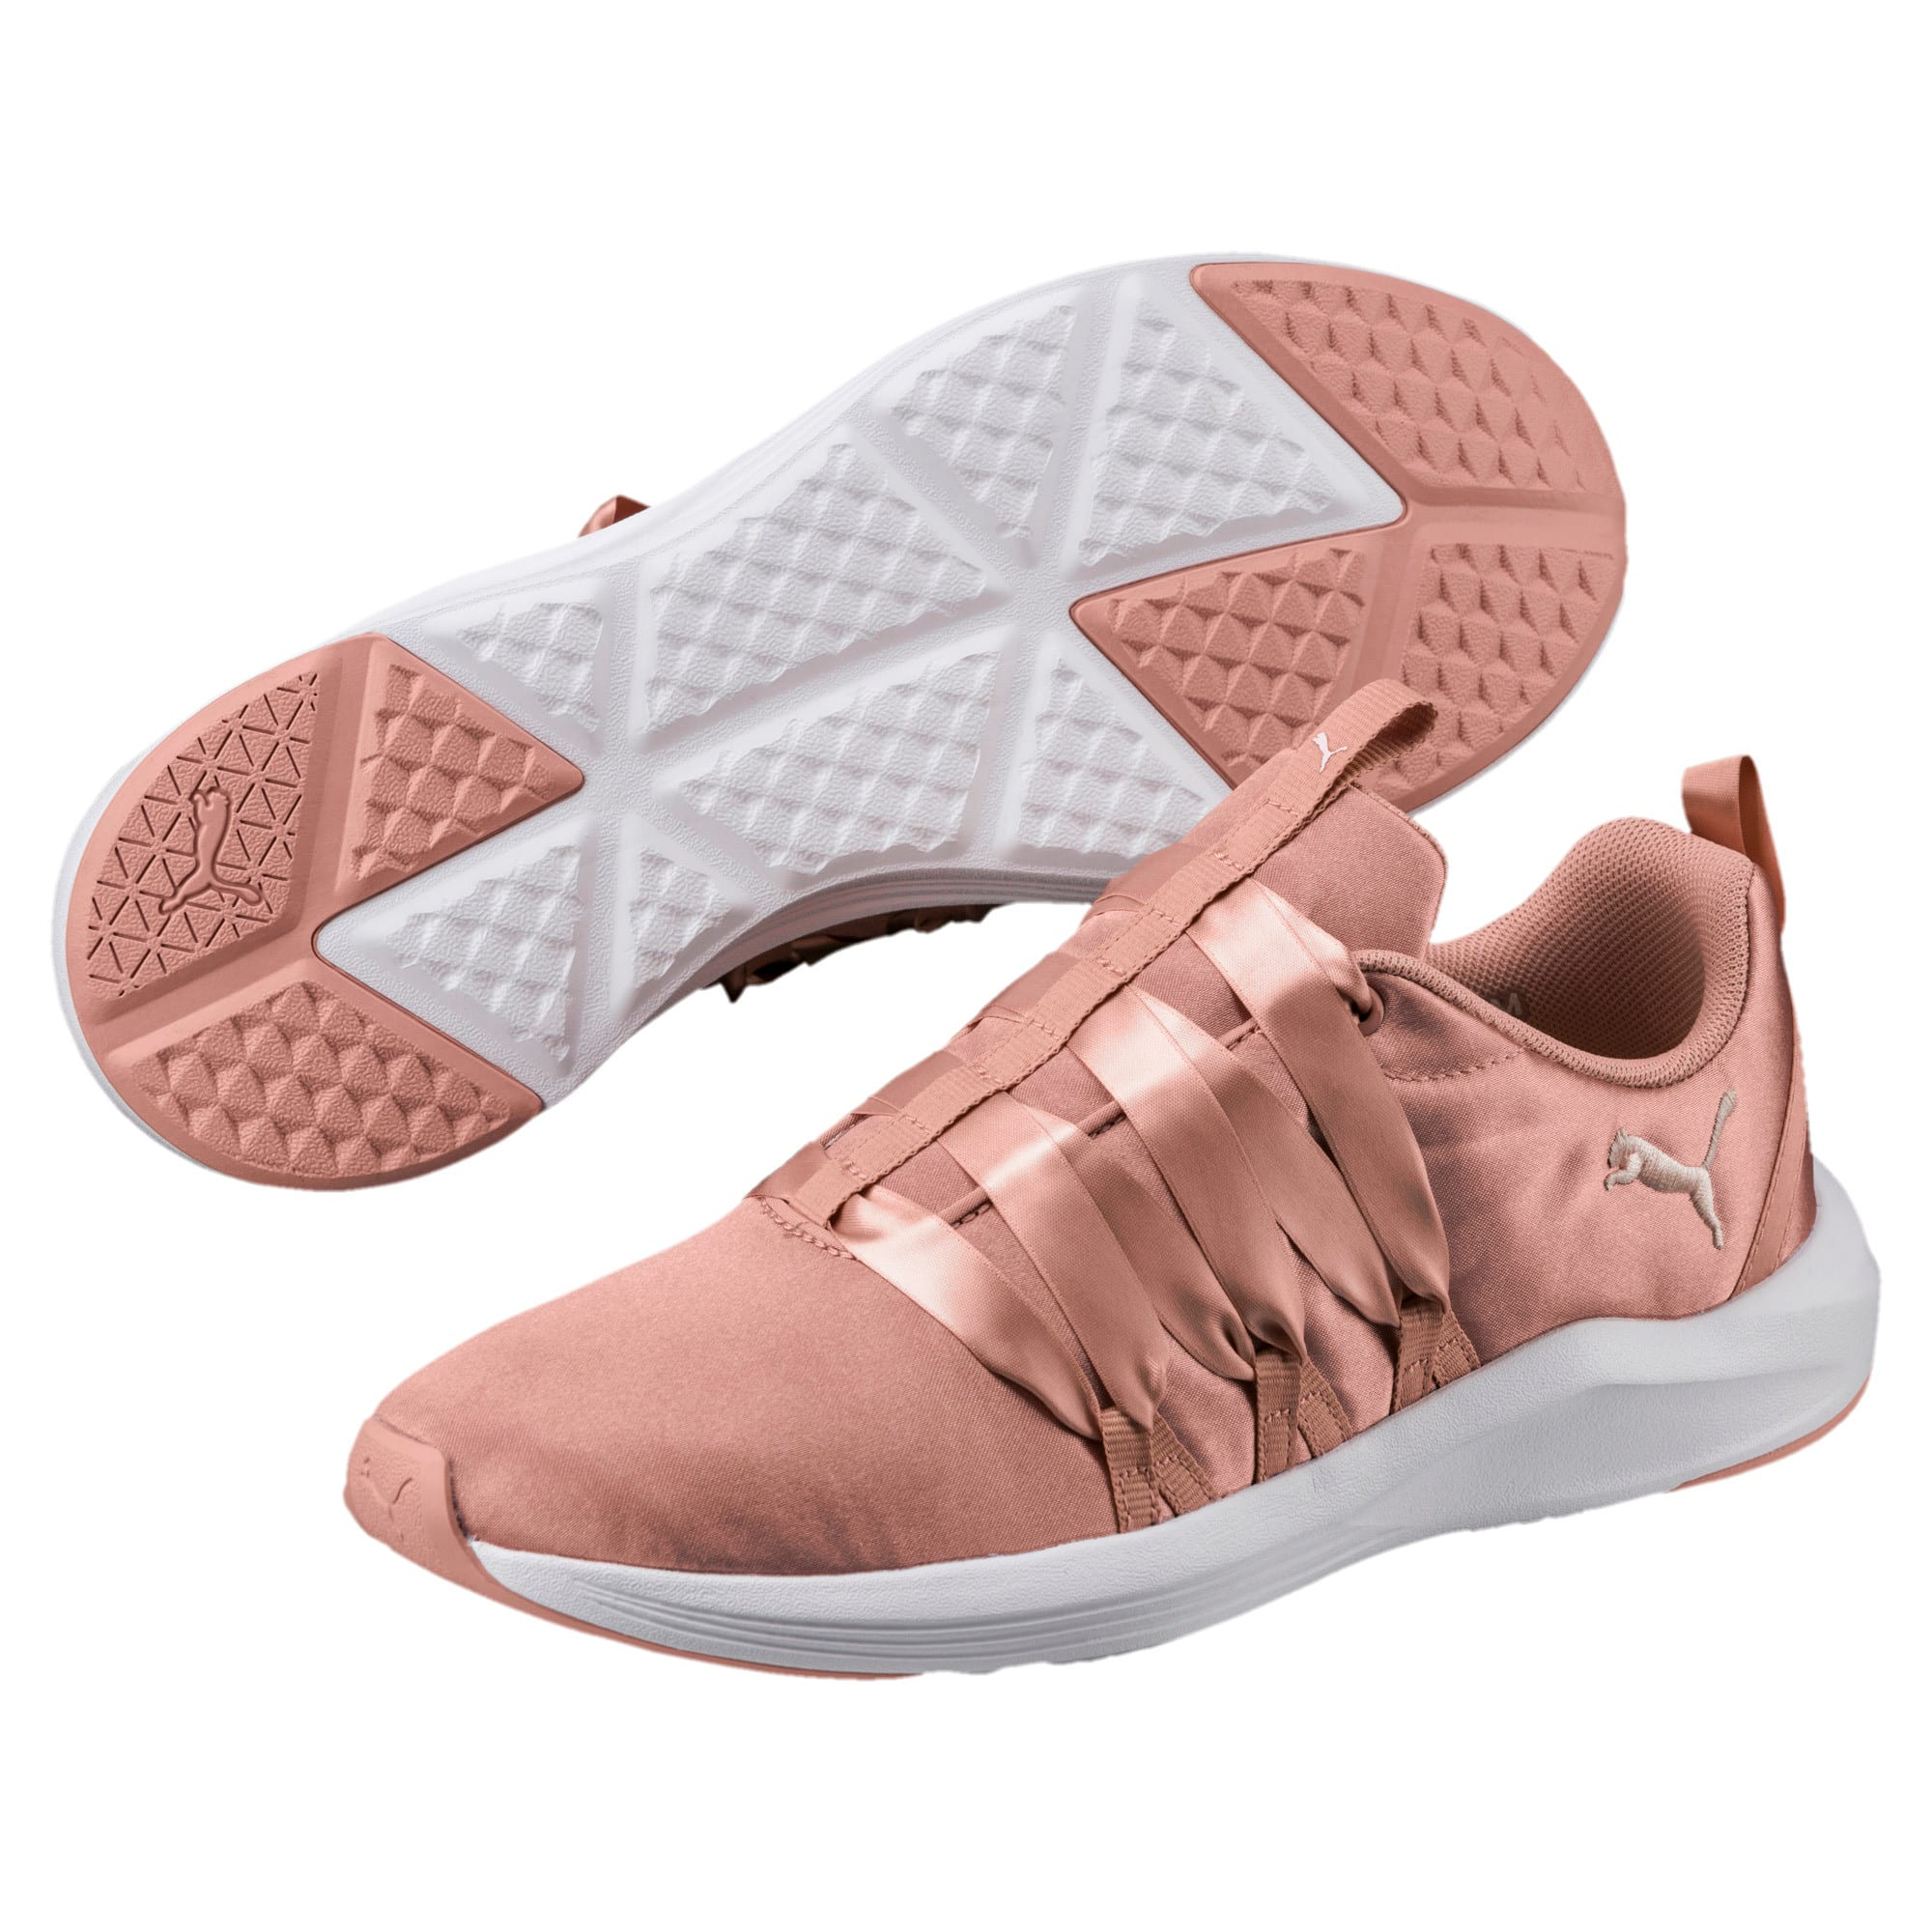 Thumbnail 2 of Prowl Alt Satin Women's Training Shoes, Peach Beige-Puma White, medium-IND